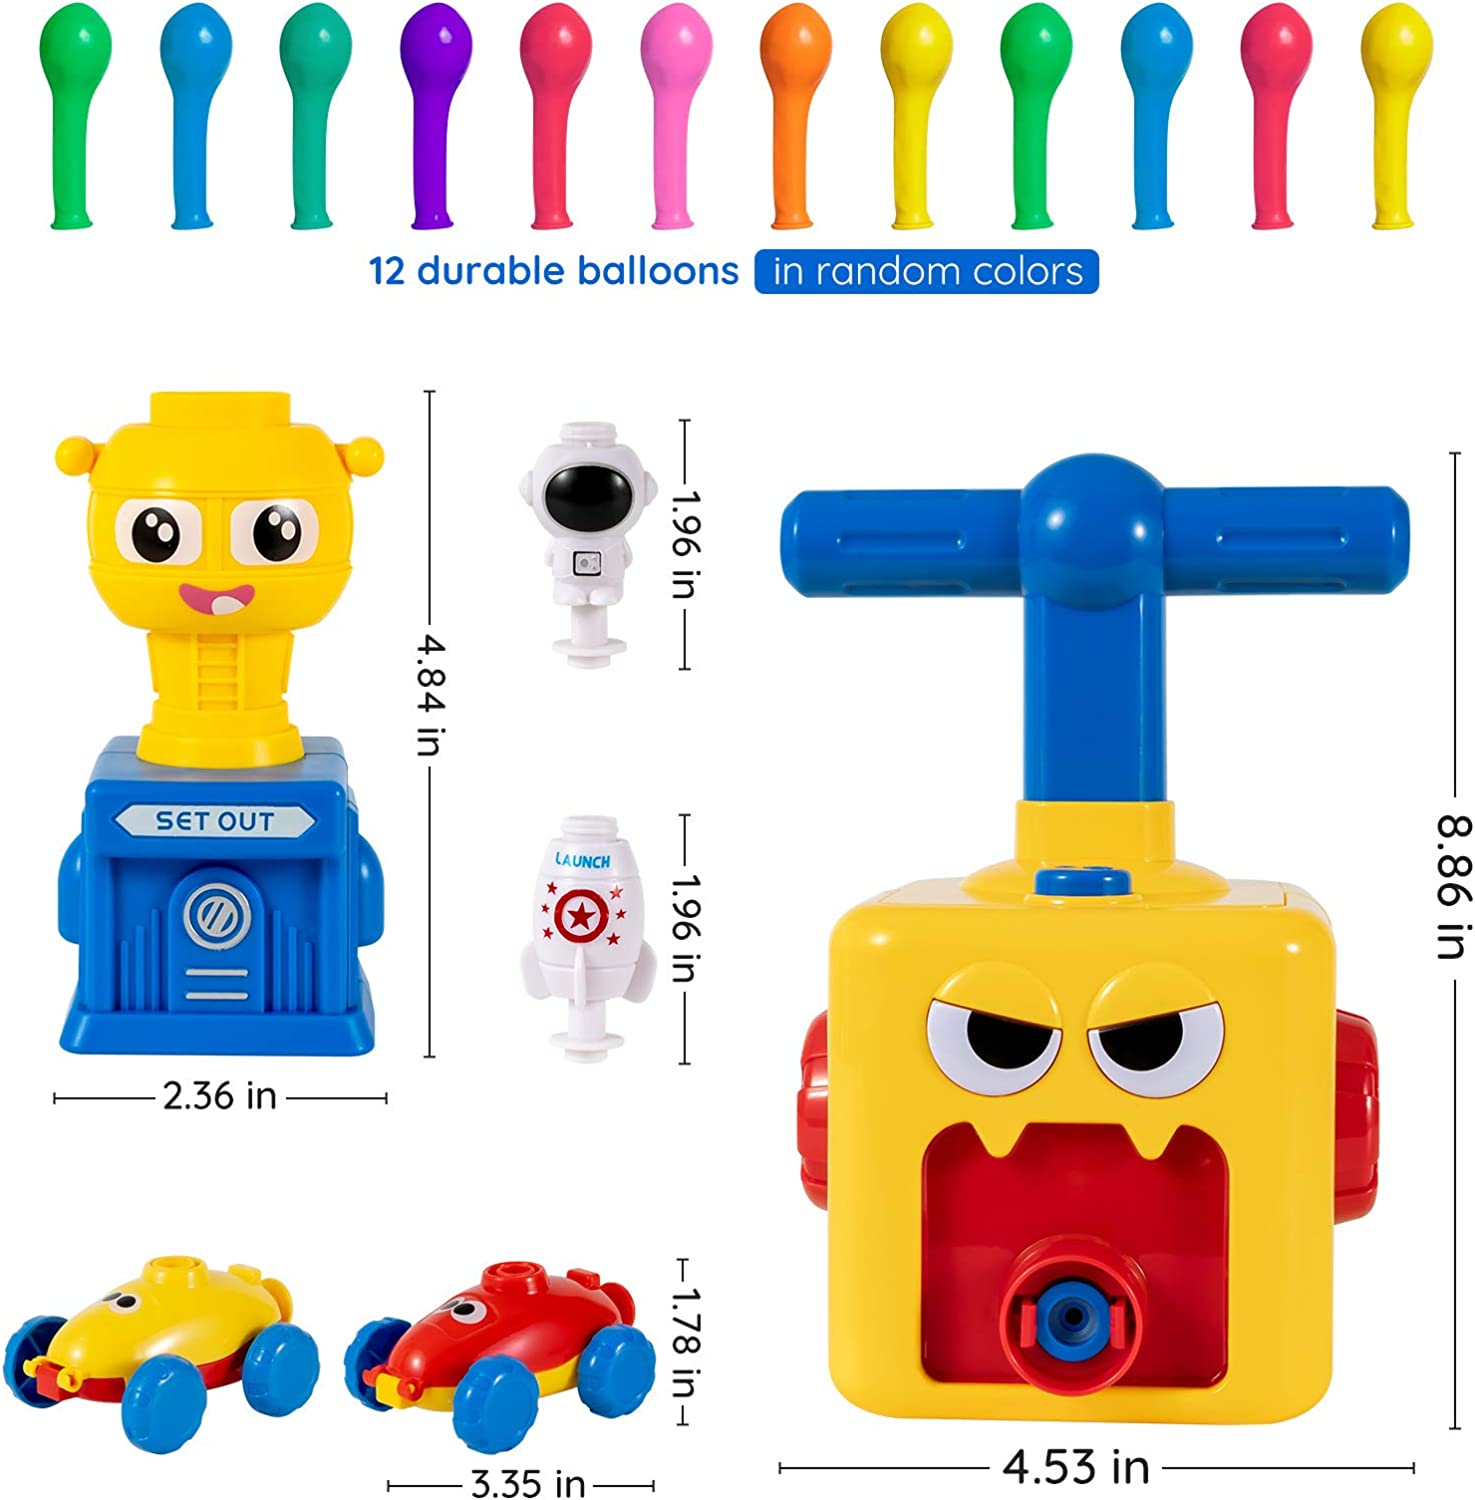 Balloon Launcher Car Toy Set Balloon Powered Car Balloon Power Rocket Spaceman Inertial Power Vhicle Launch Tower Educational Scientific Experiment Toy Flying Toy Vehicle Toy for Kids with 12 Balloons